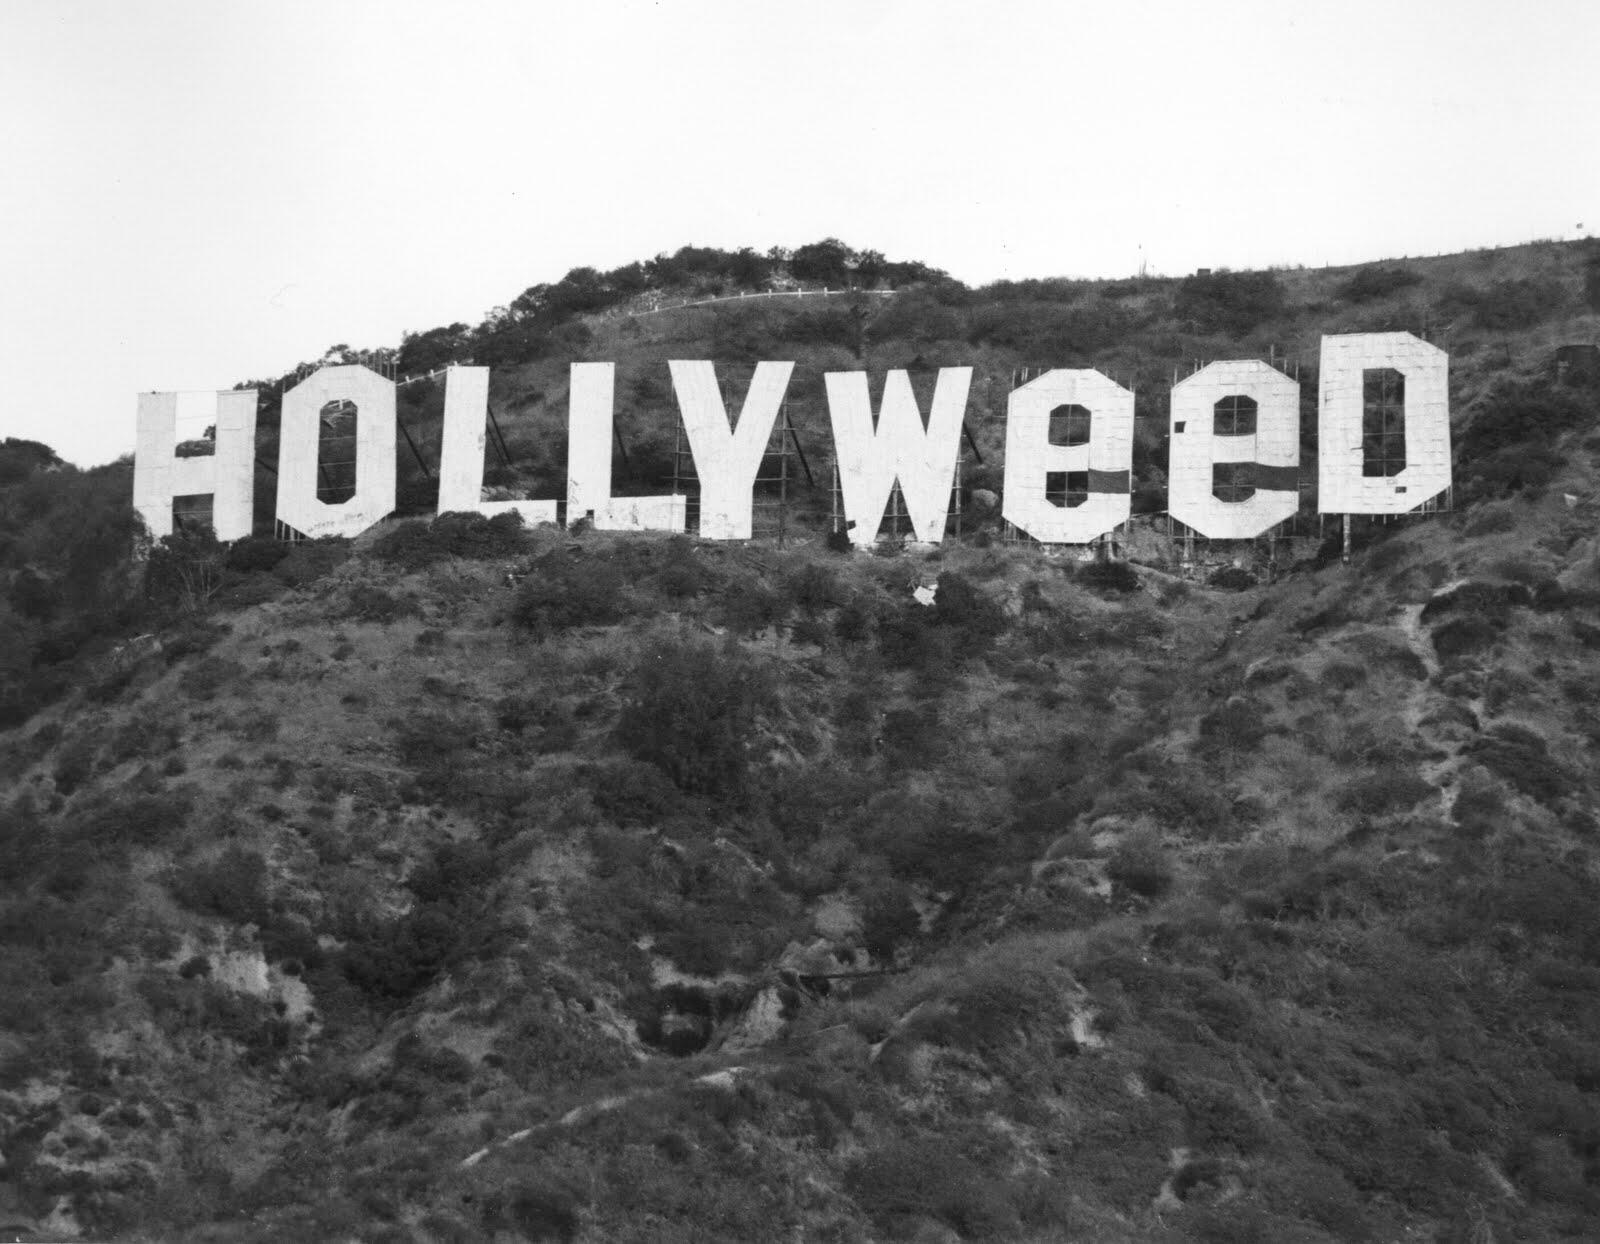 On January 1st, 1976, a prankster named Danny Finegood did this to the Hollywood sign. http://t.co/fC8zpX5R5p